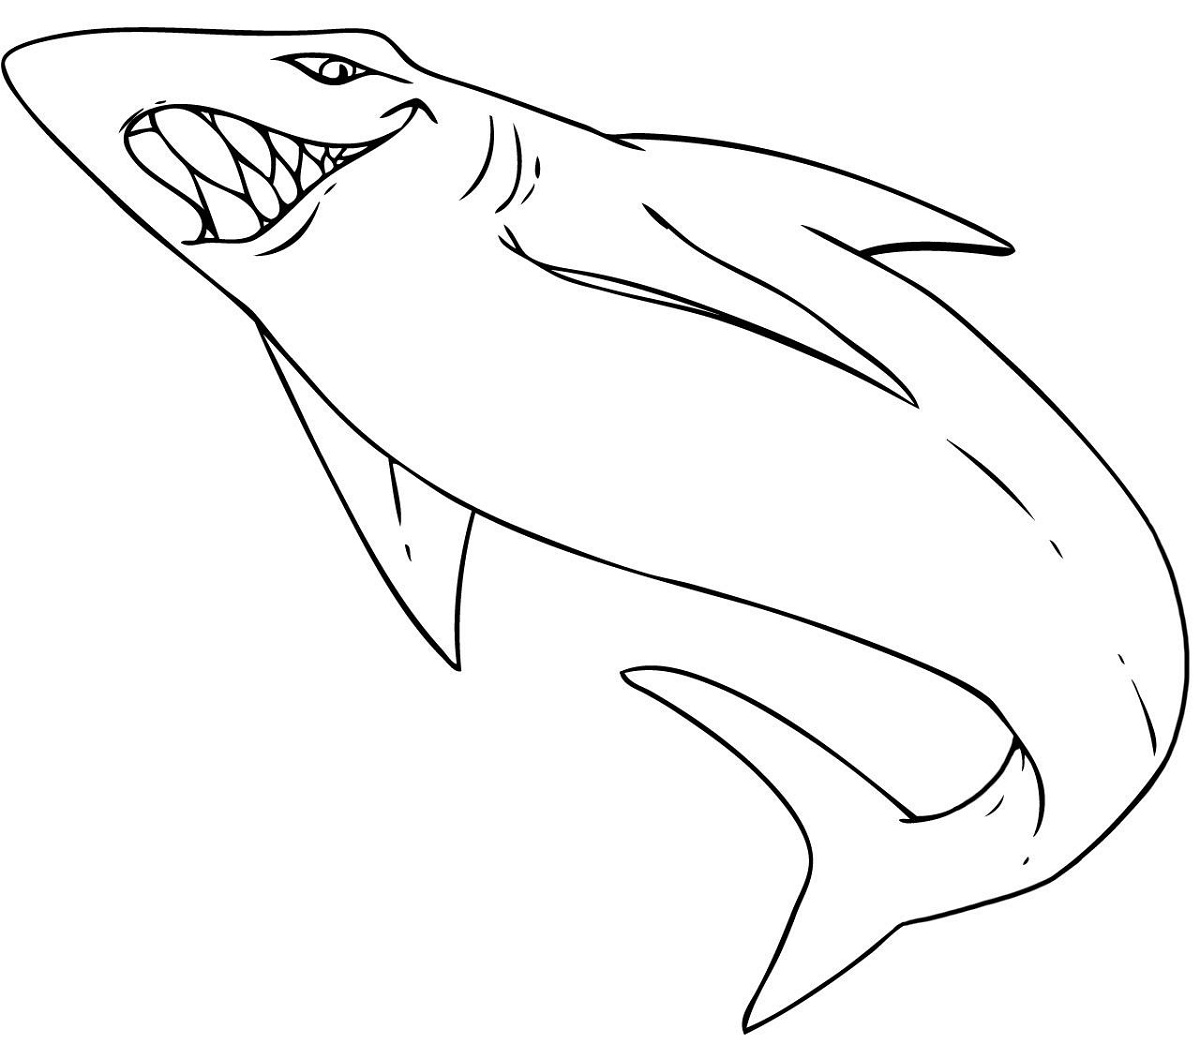 coloring pages sharks printable free easy to print shark coloring pages tulamama sharks pages coloring printable